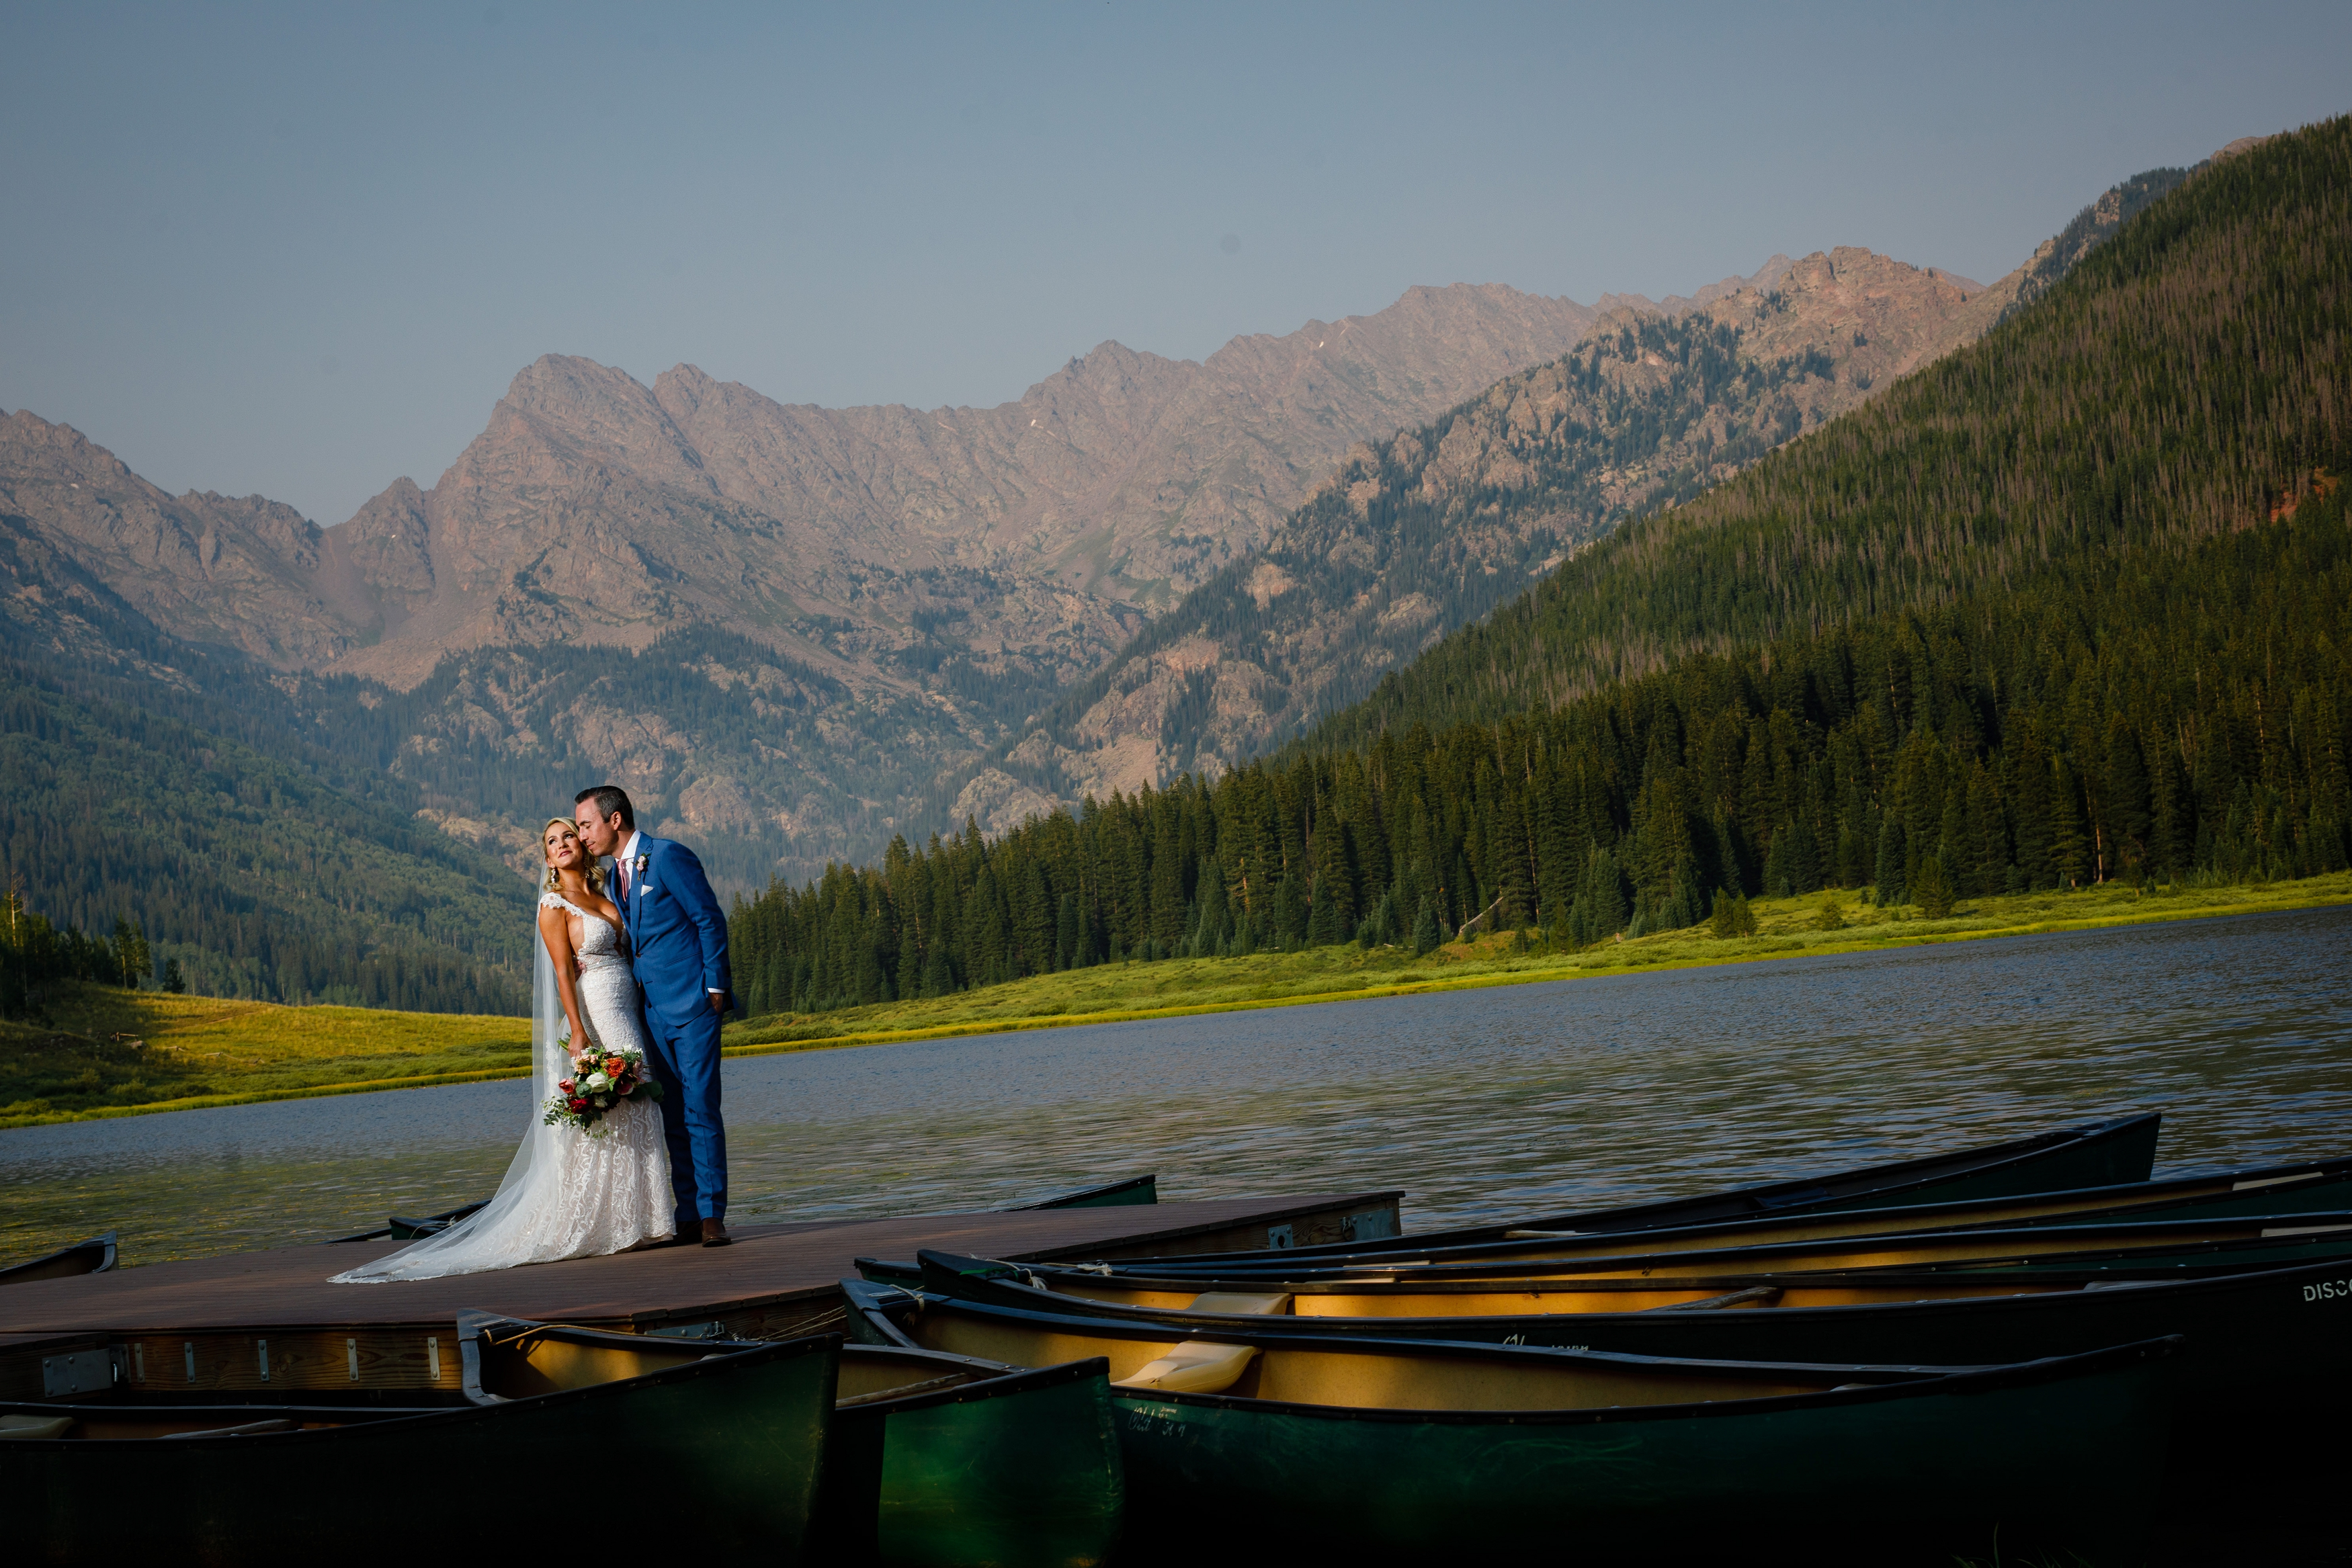 One final portrait from a beautiful Summer Wedding at Piney River Ranch near Vail, CO.